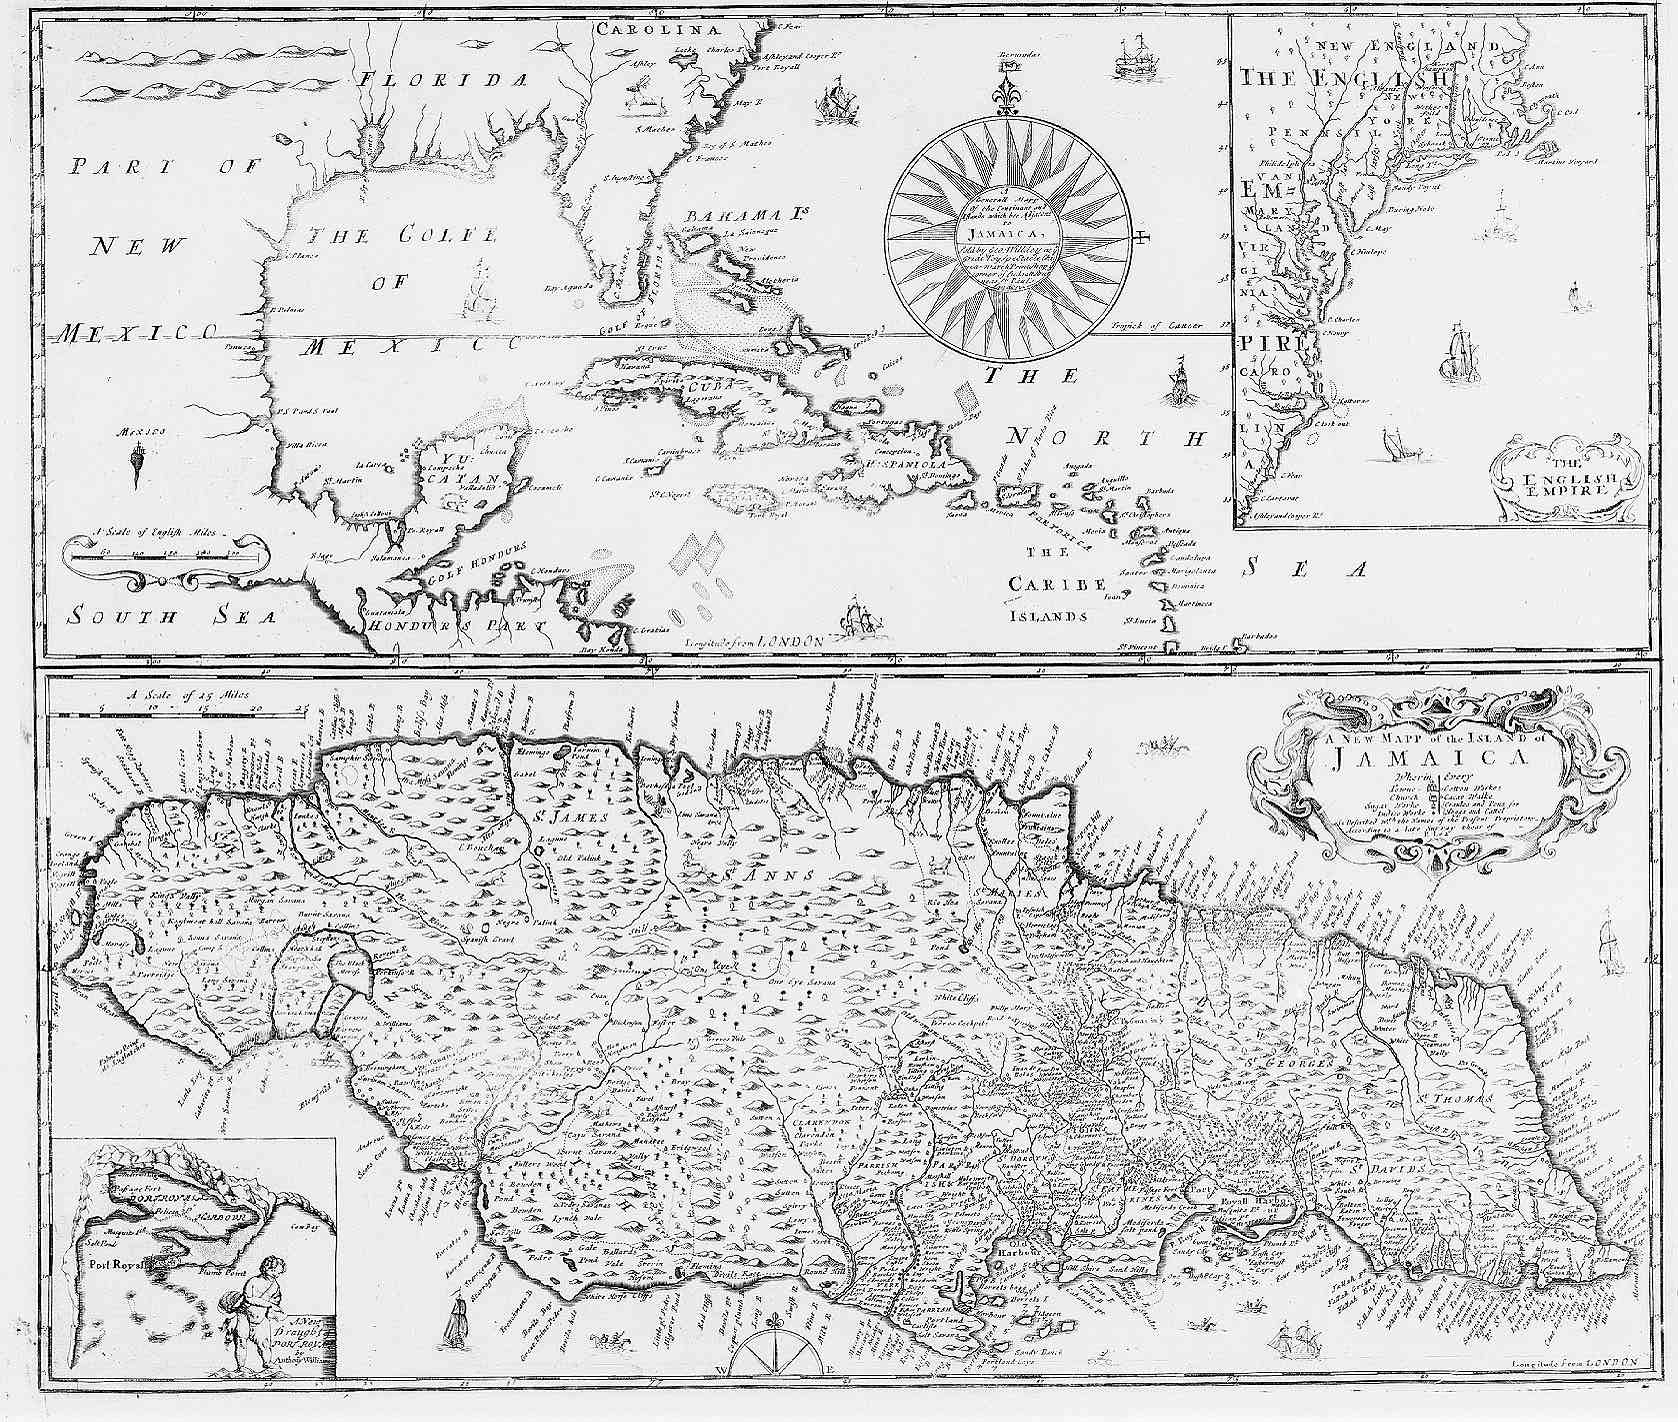 Jamaica and Caribbean 1685